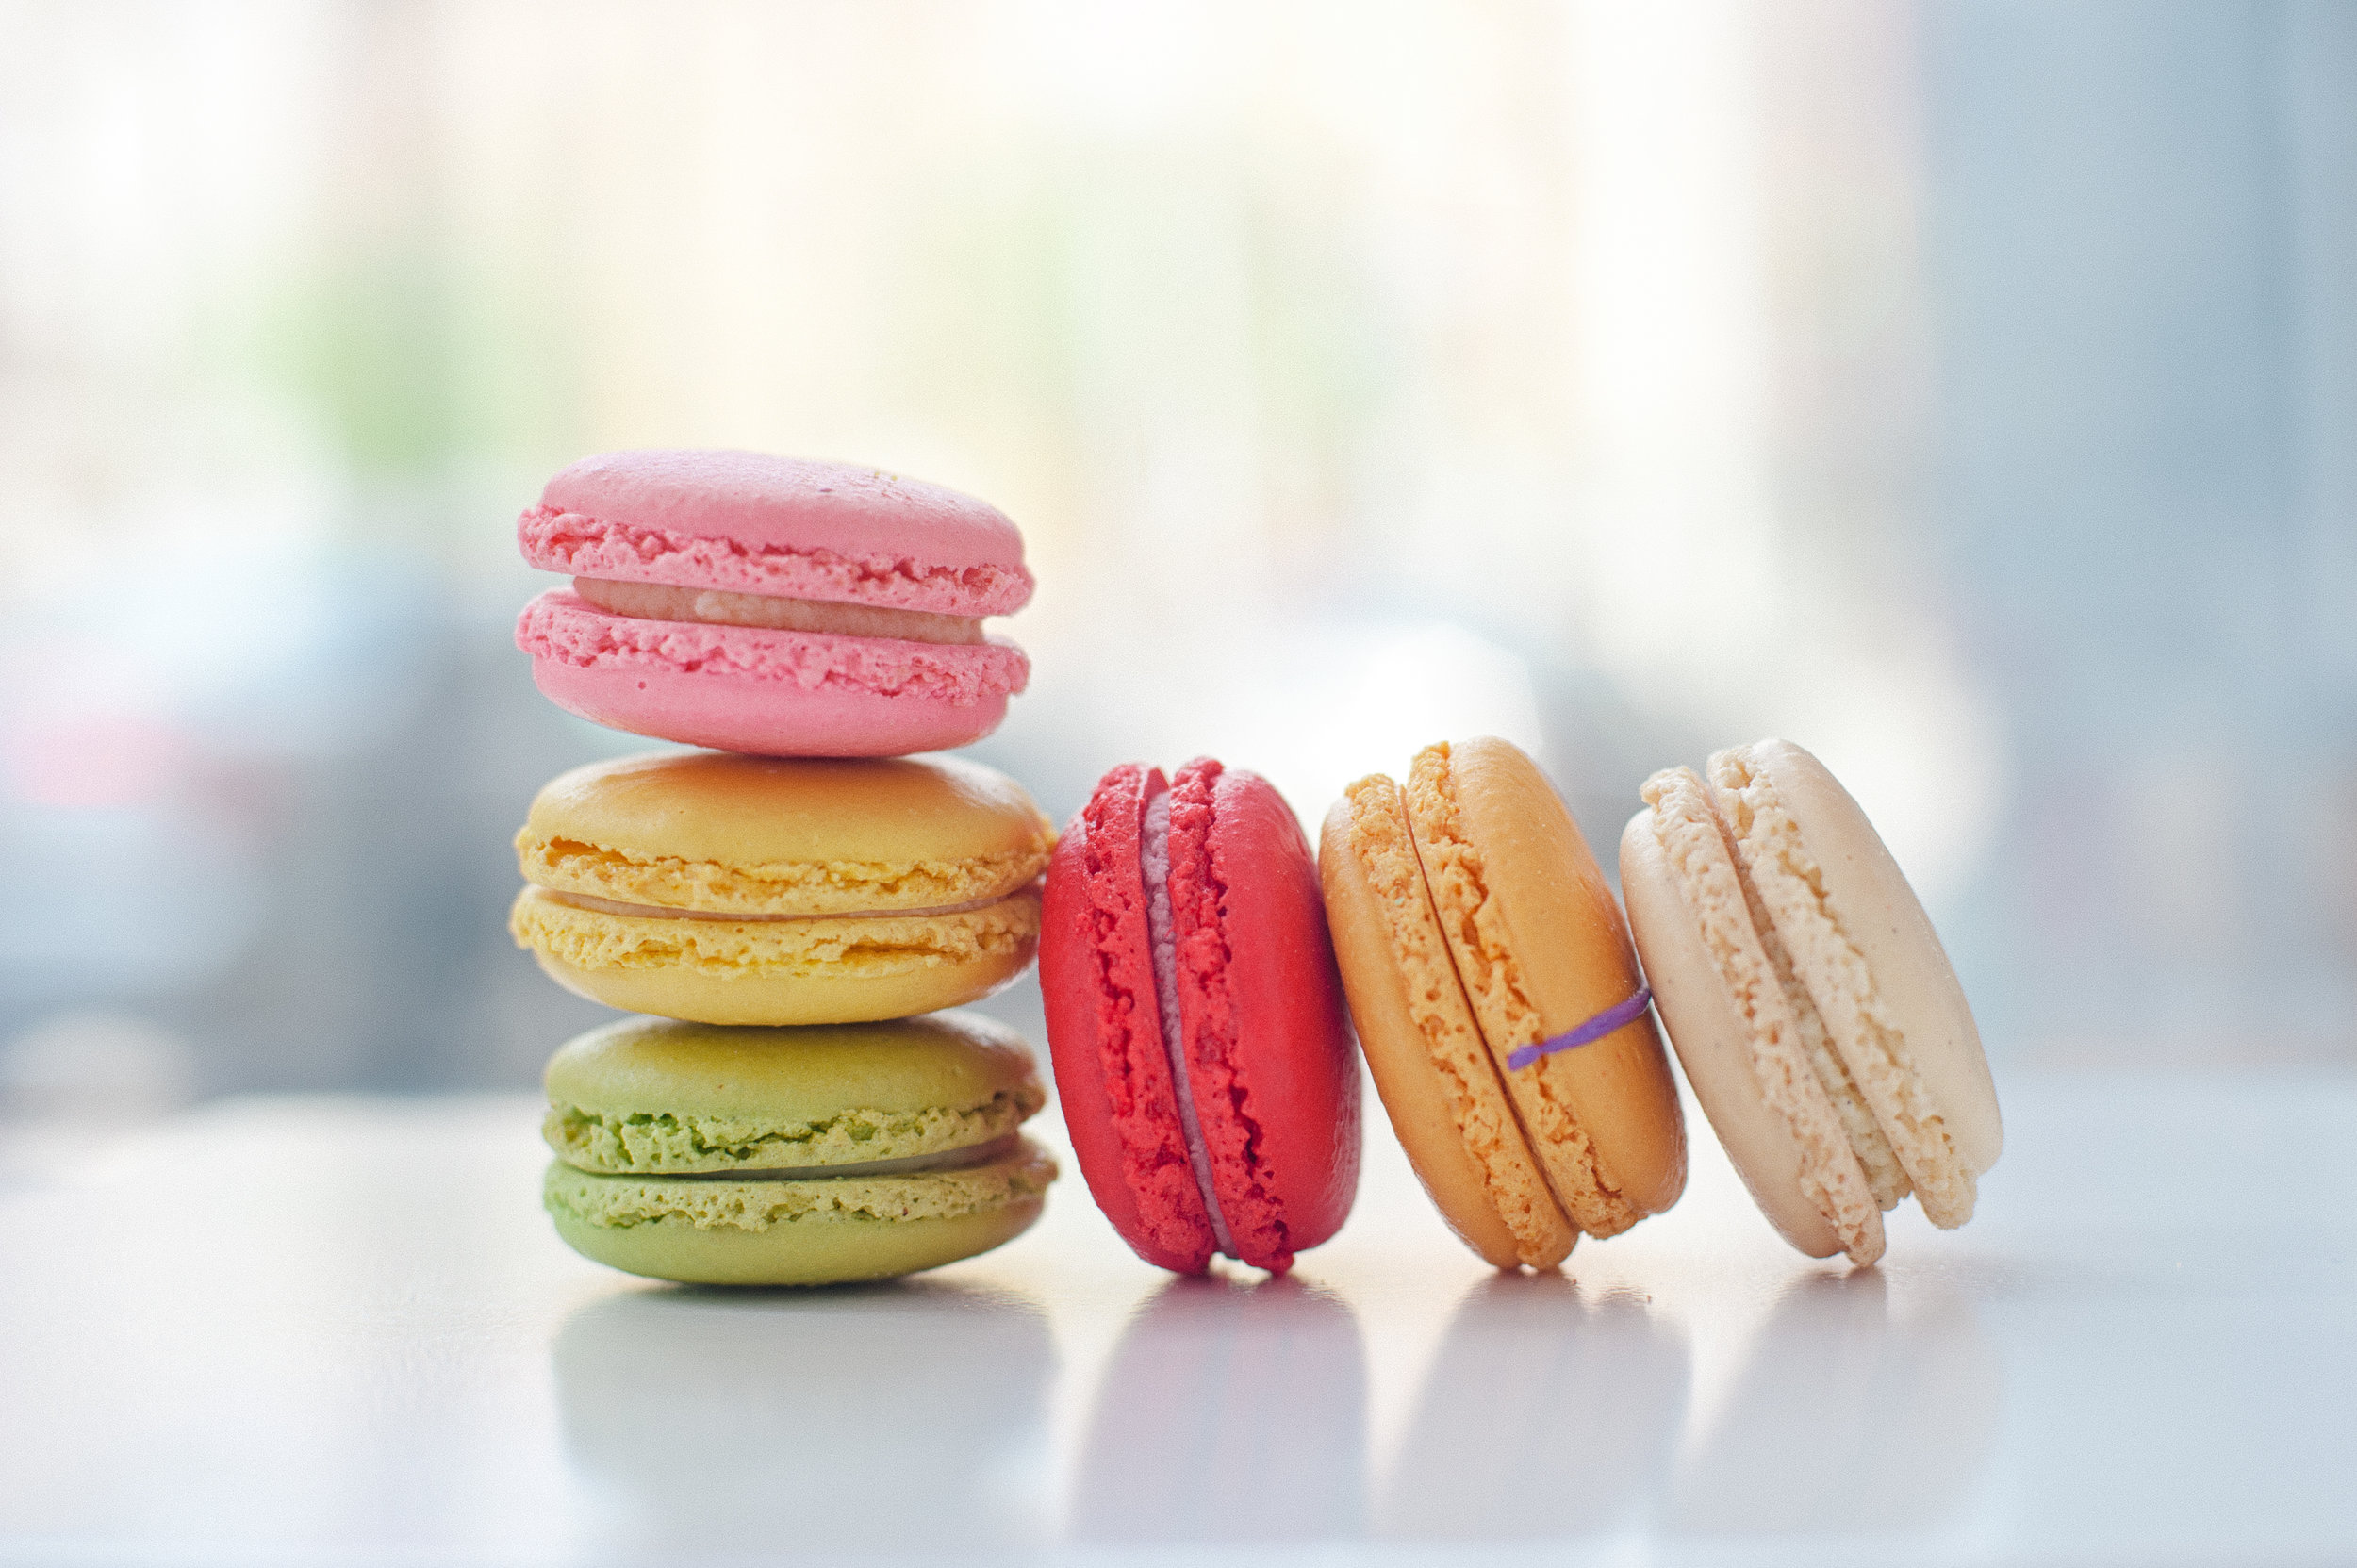 macarons in vivid sahdes of pink, orange, red, and green